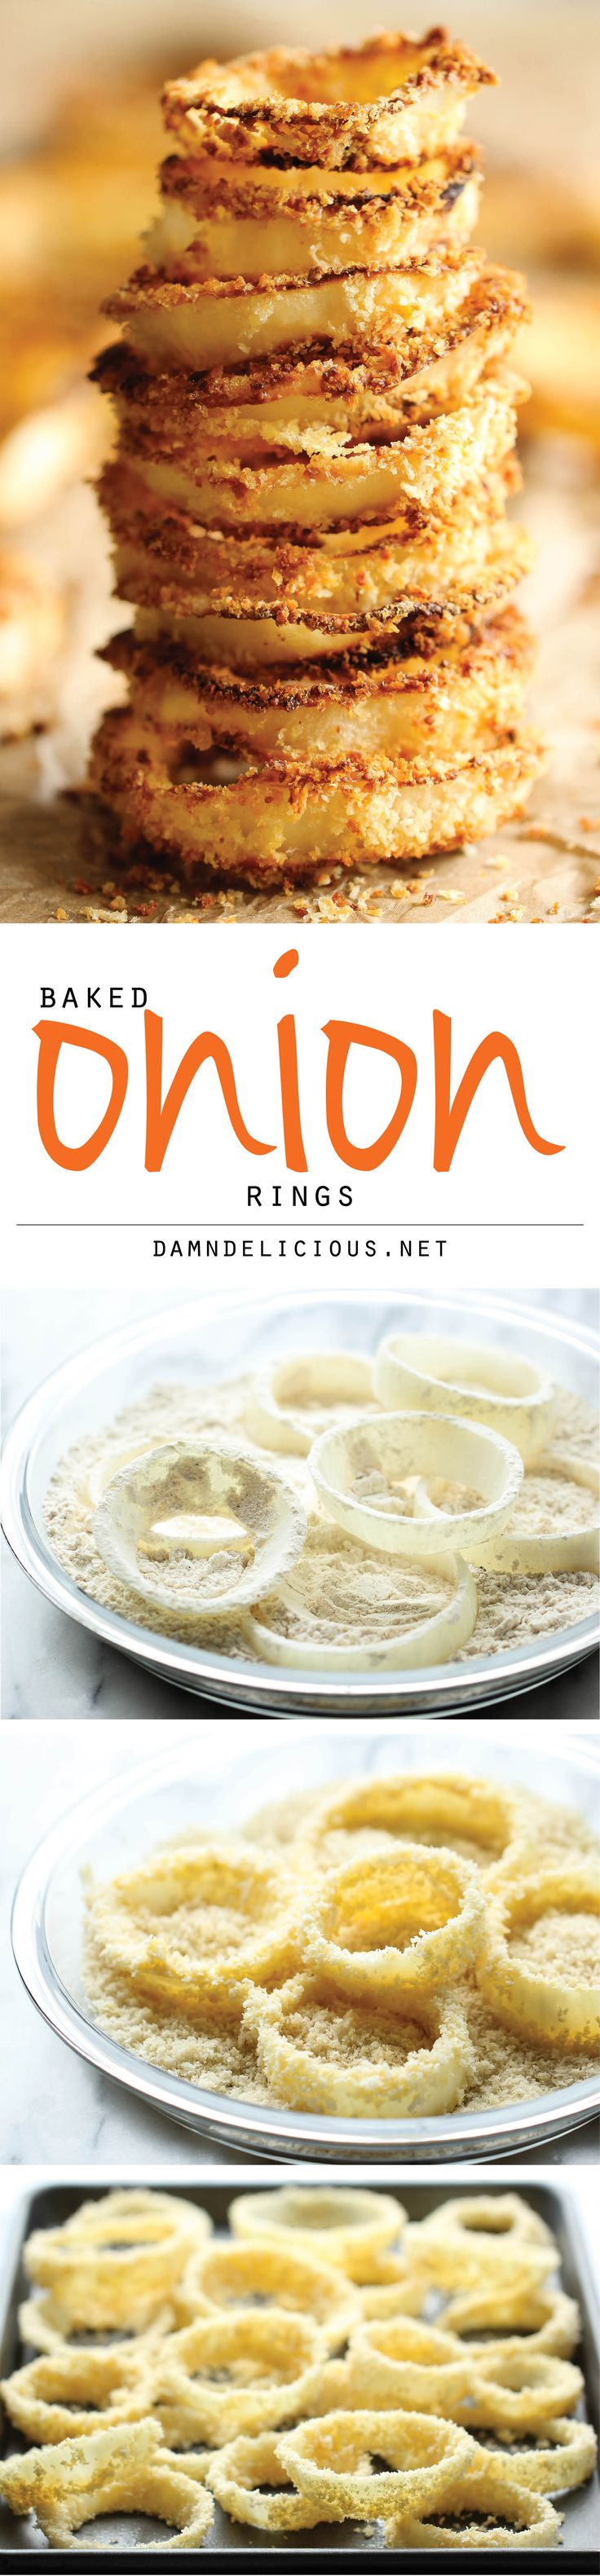 ~Oven Baked Onion Rings - No need to deal with hot oil - these onion rings are easily baked to crisp-perfection right in the oven!